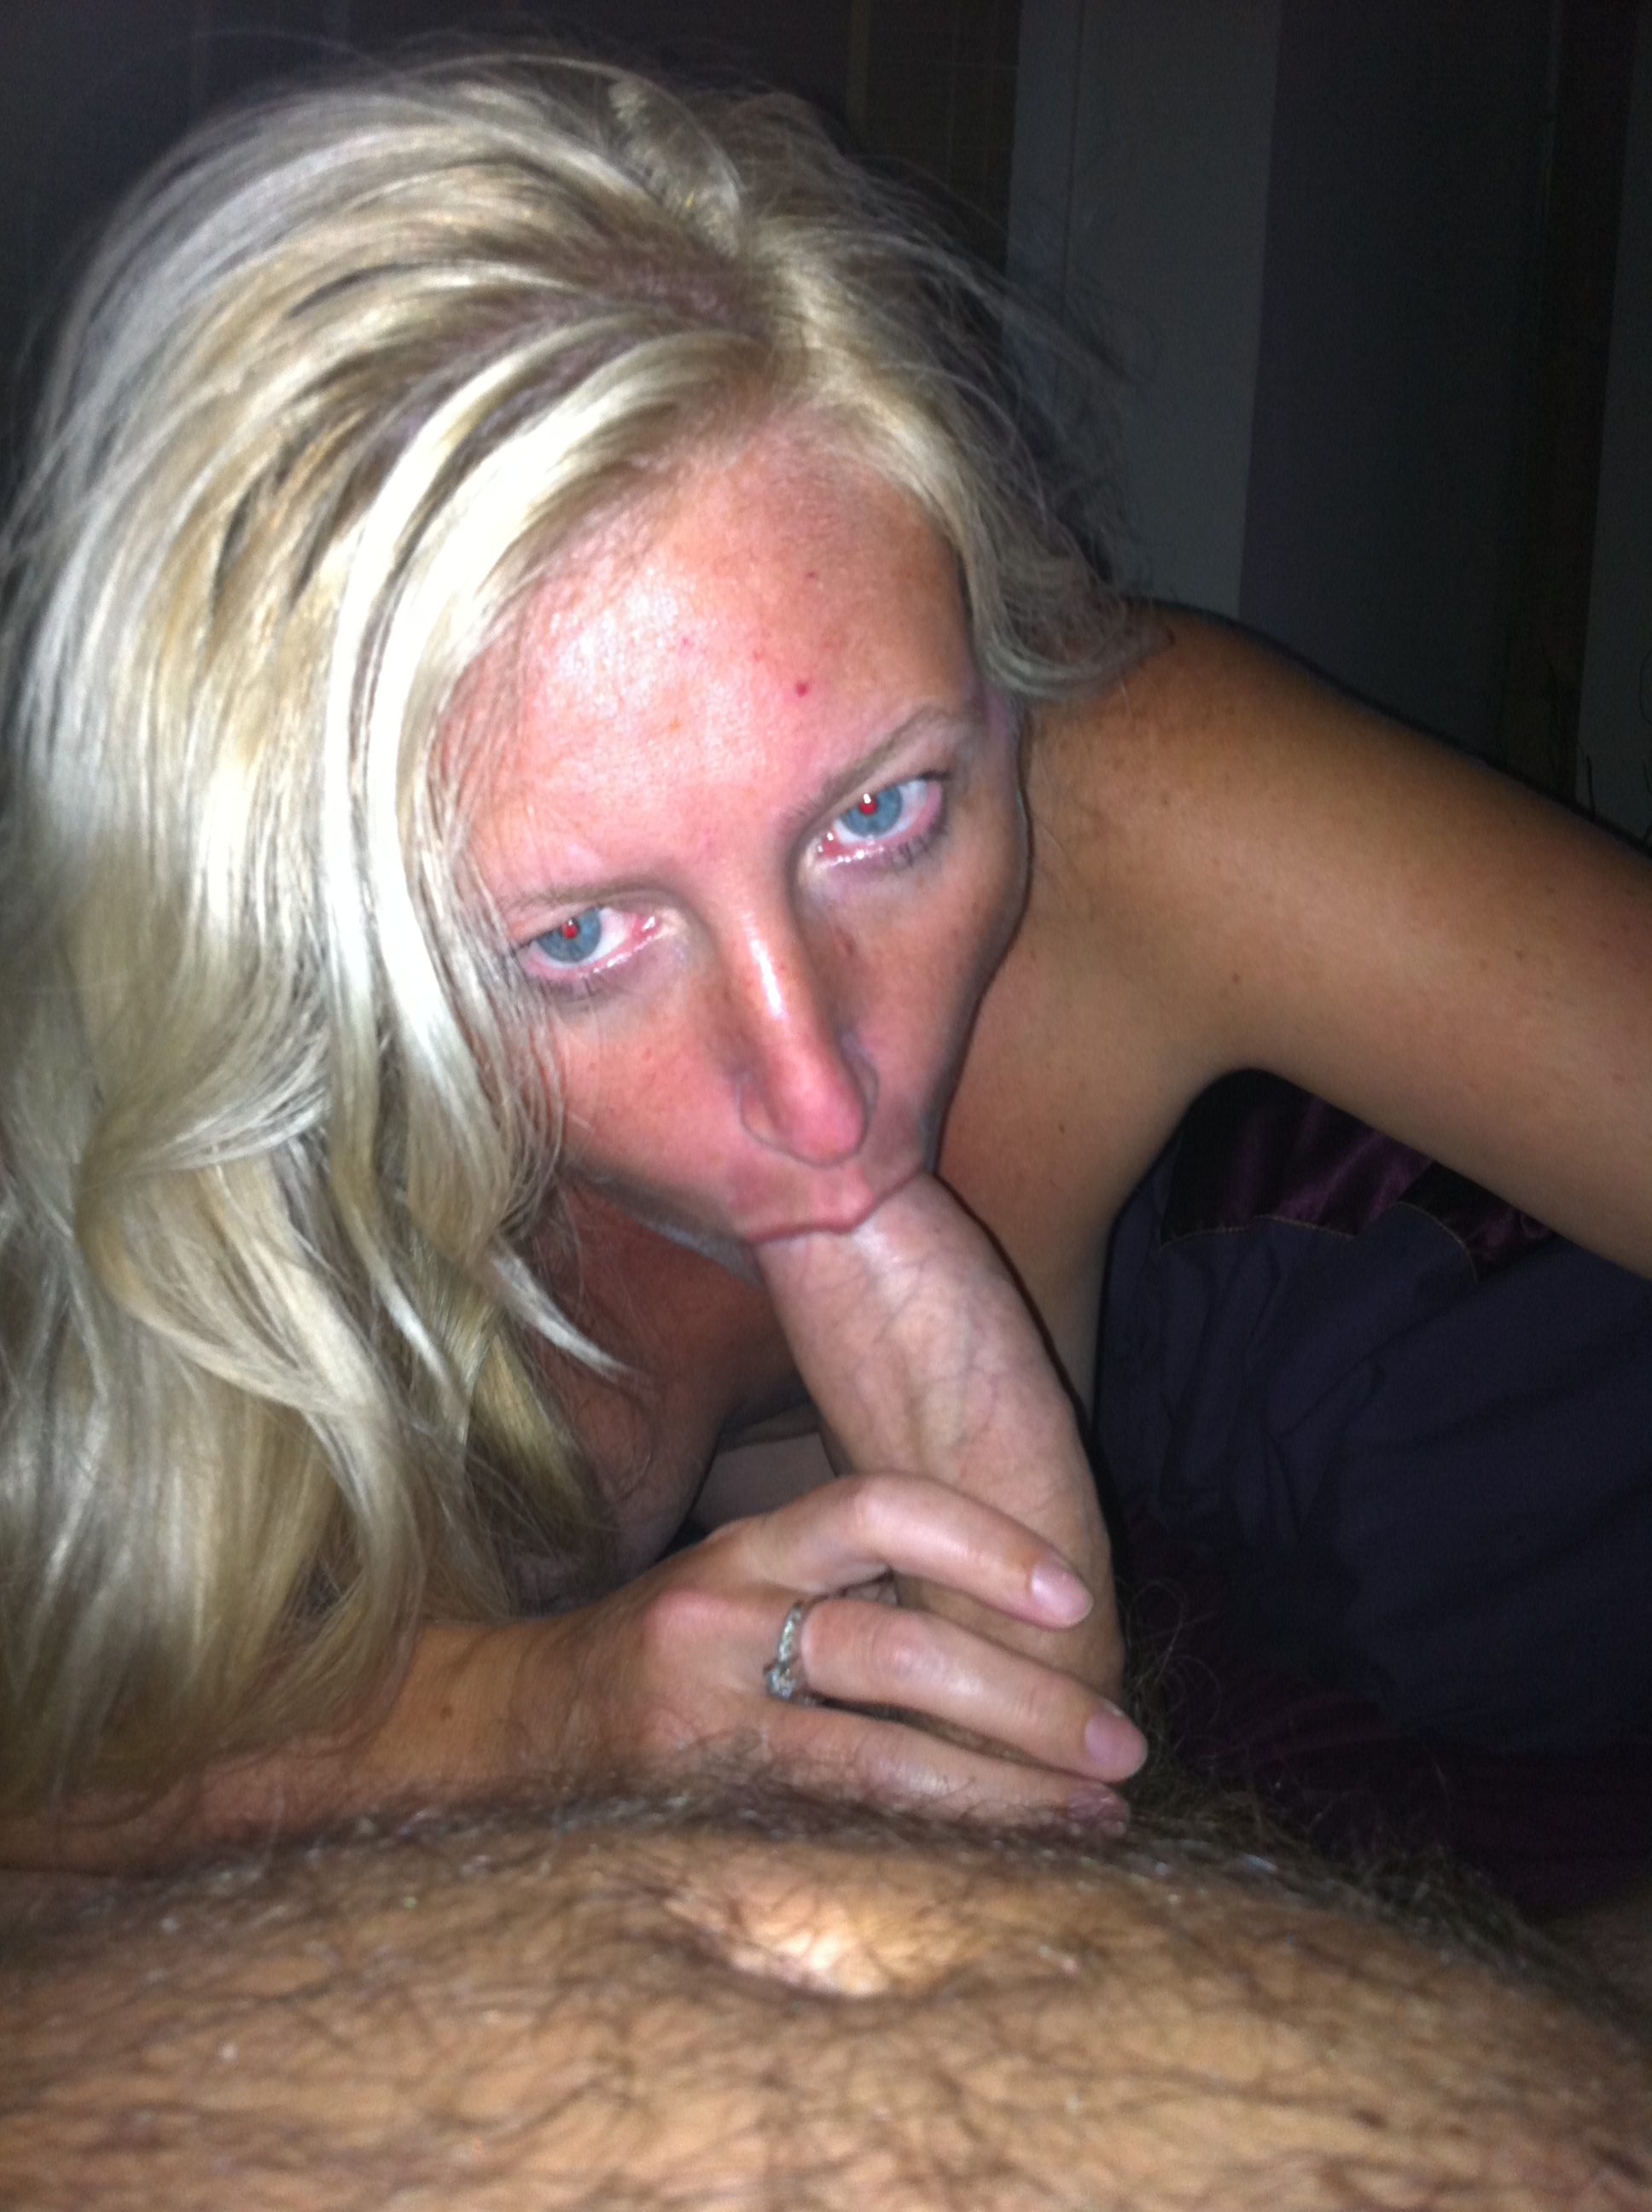 will know, mature big tits fuck sonns frend for that interfere